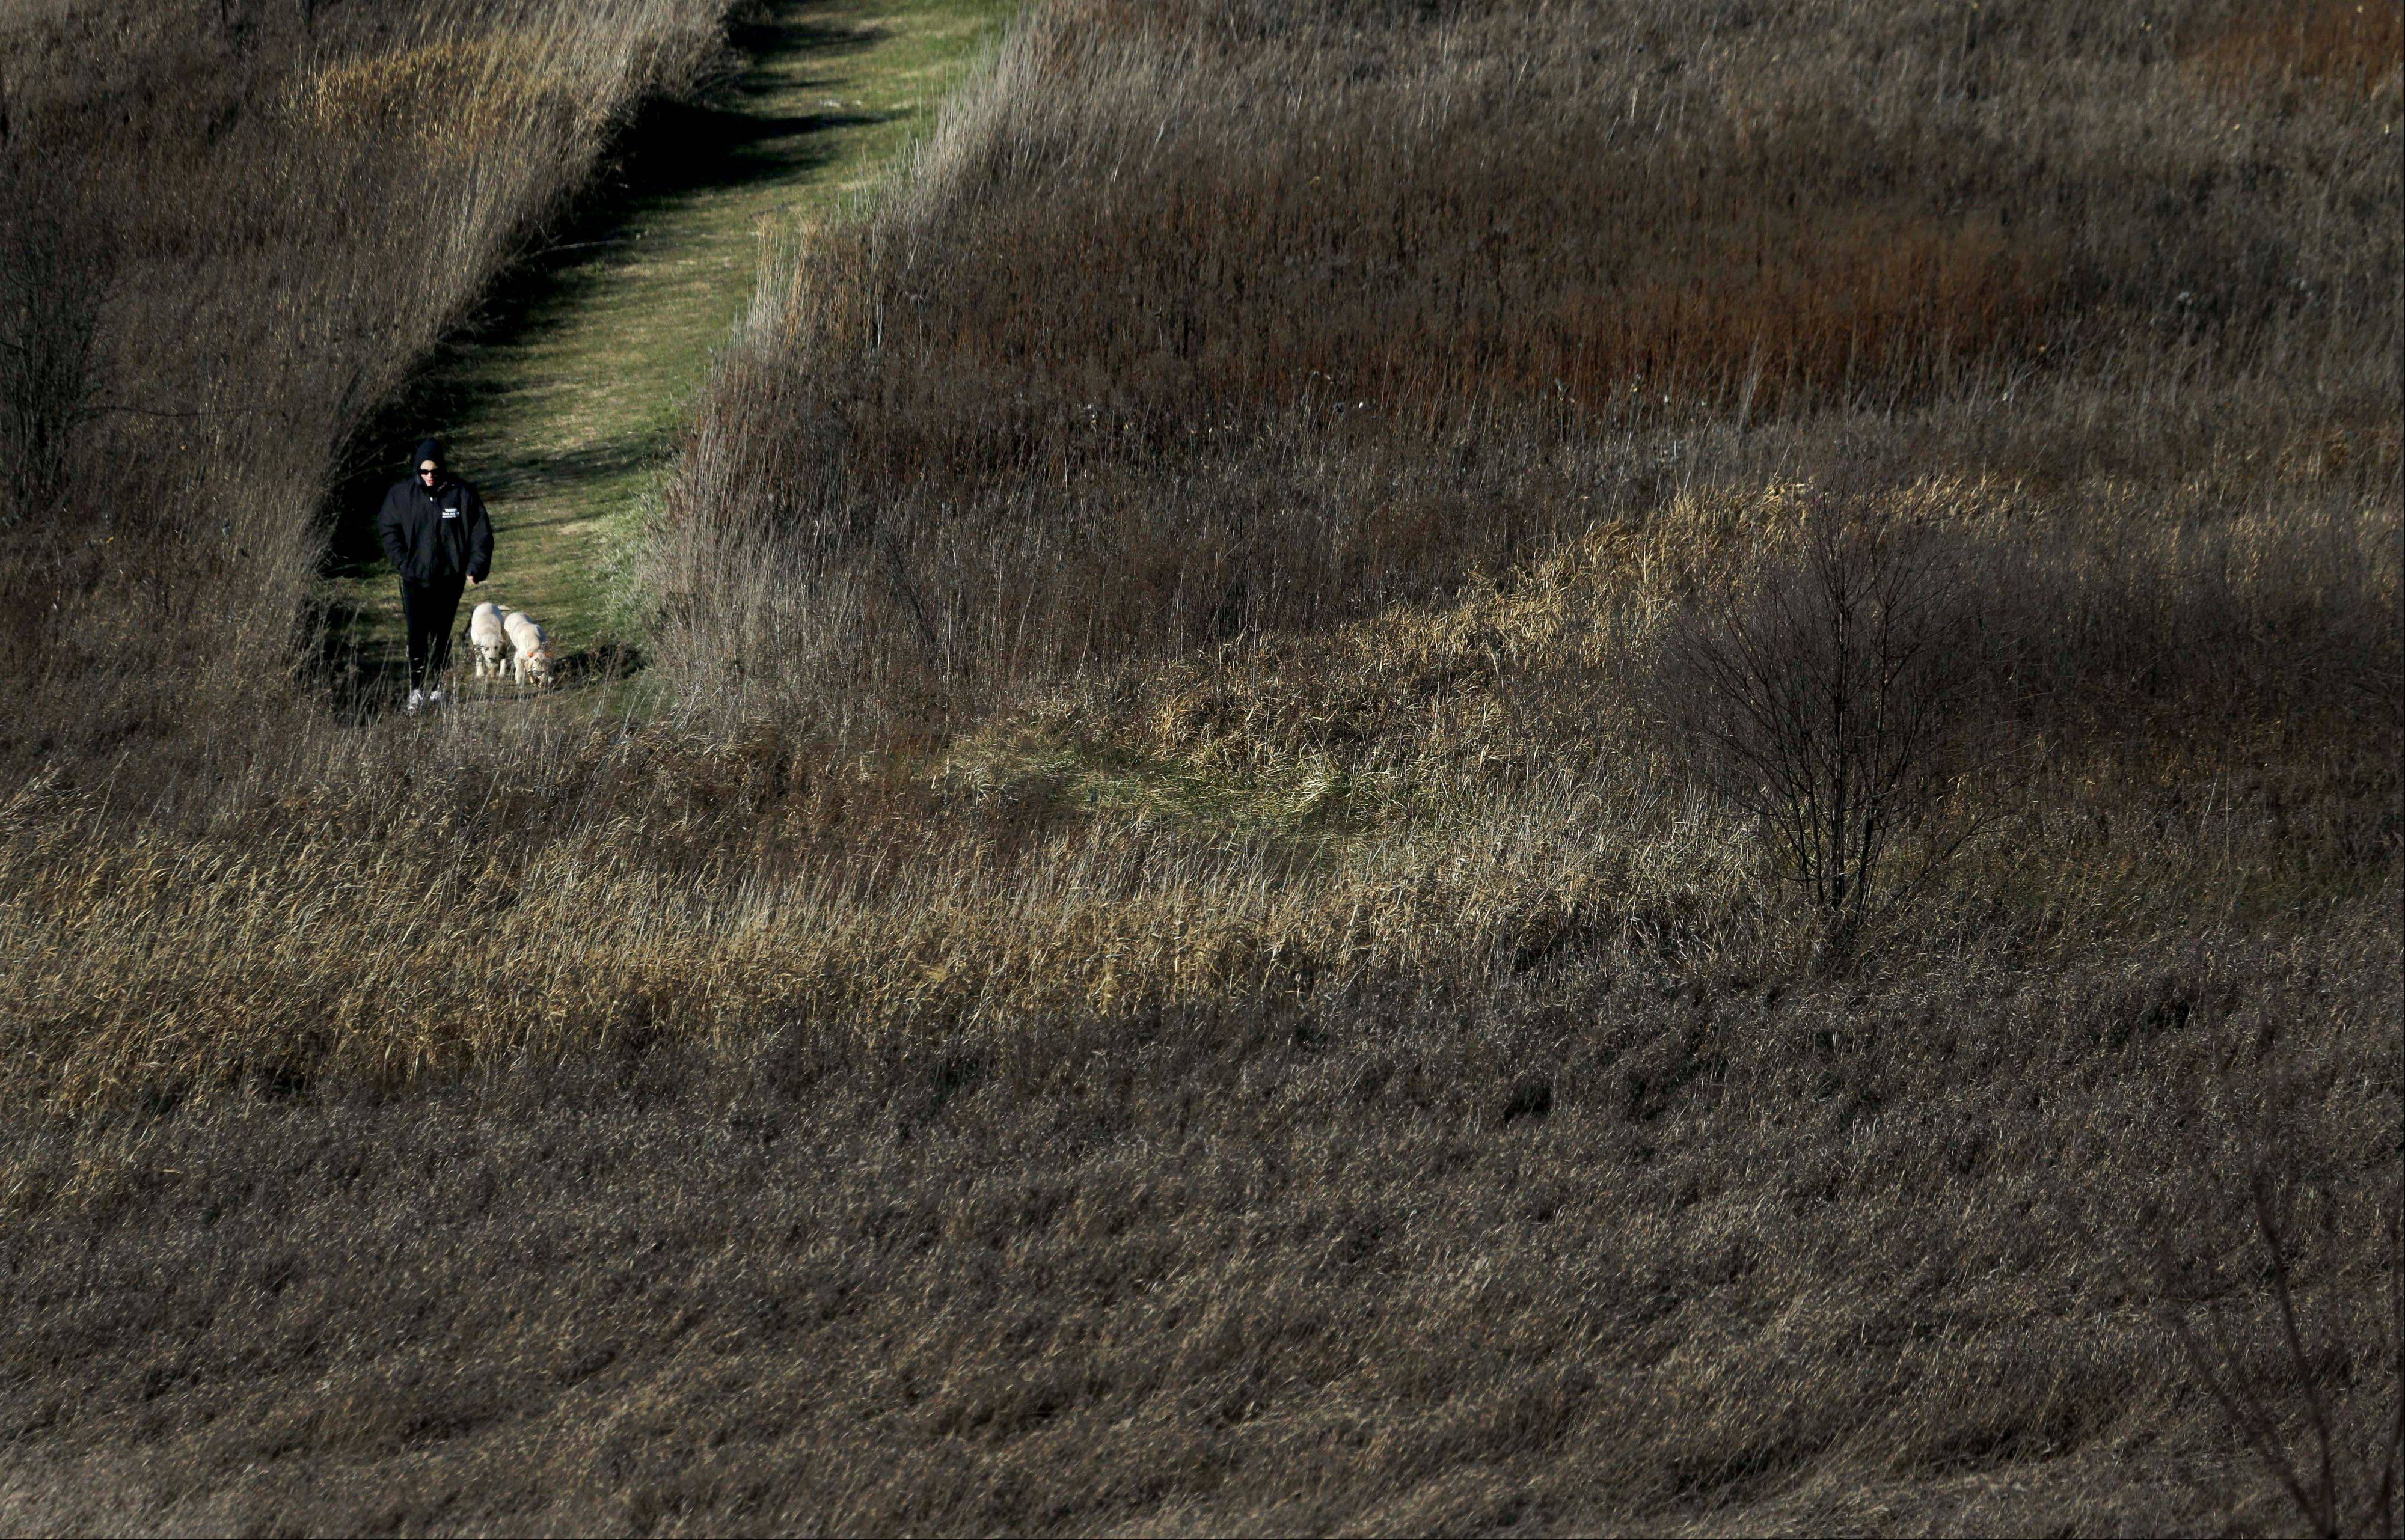 A lone hiker walks two dogs through the 3, 400-acre Glacial Park, a section of the of the 11,200 acre Hackmatack National Wildlife Refuge. Traffic jams, subdivisions and shopping malls give way to remnants of prairies and oak savannas more endangered than rain forests in the Hackmatack refuge, an hour northwest of Chicago and southwest of Milwaukee.